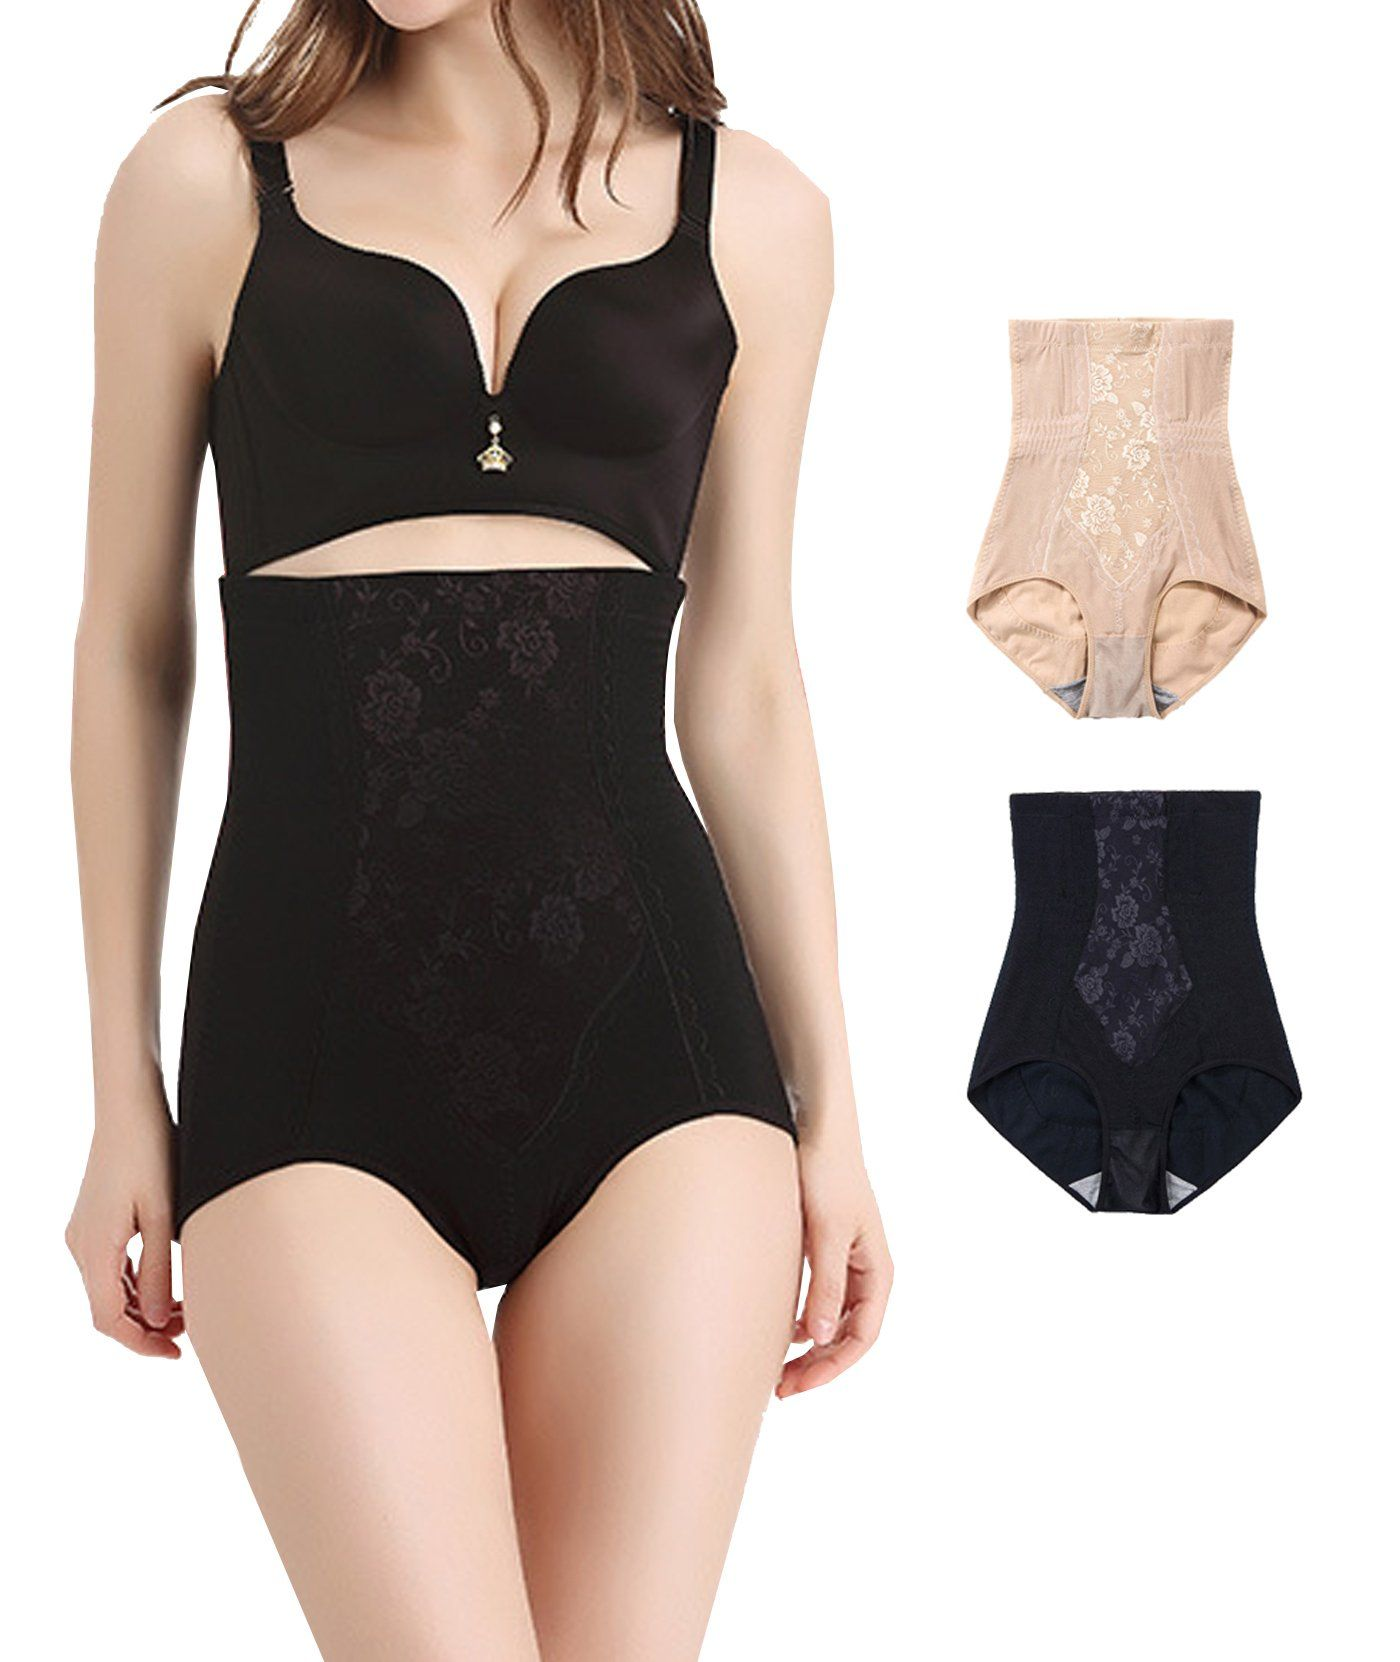 0ba31b47bc4 2Pack Ultra High Waist Body Shaper Slimming Panty Tummy Control Shapewear  Brief 3X Plus     Want to know more